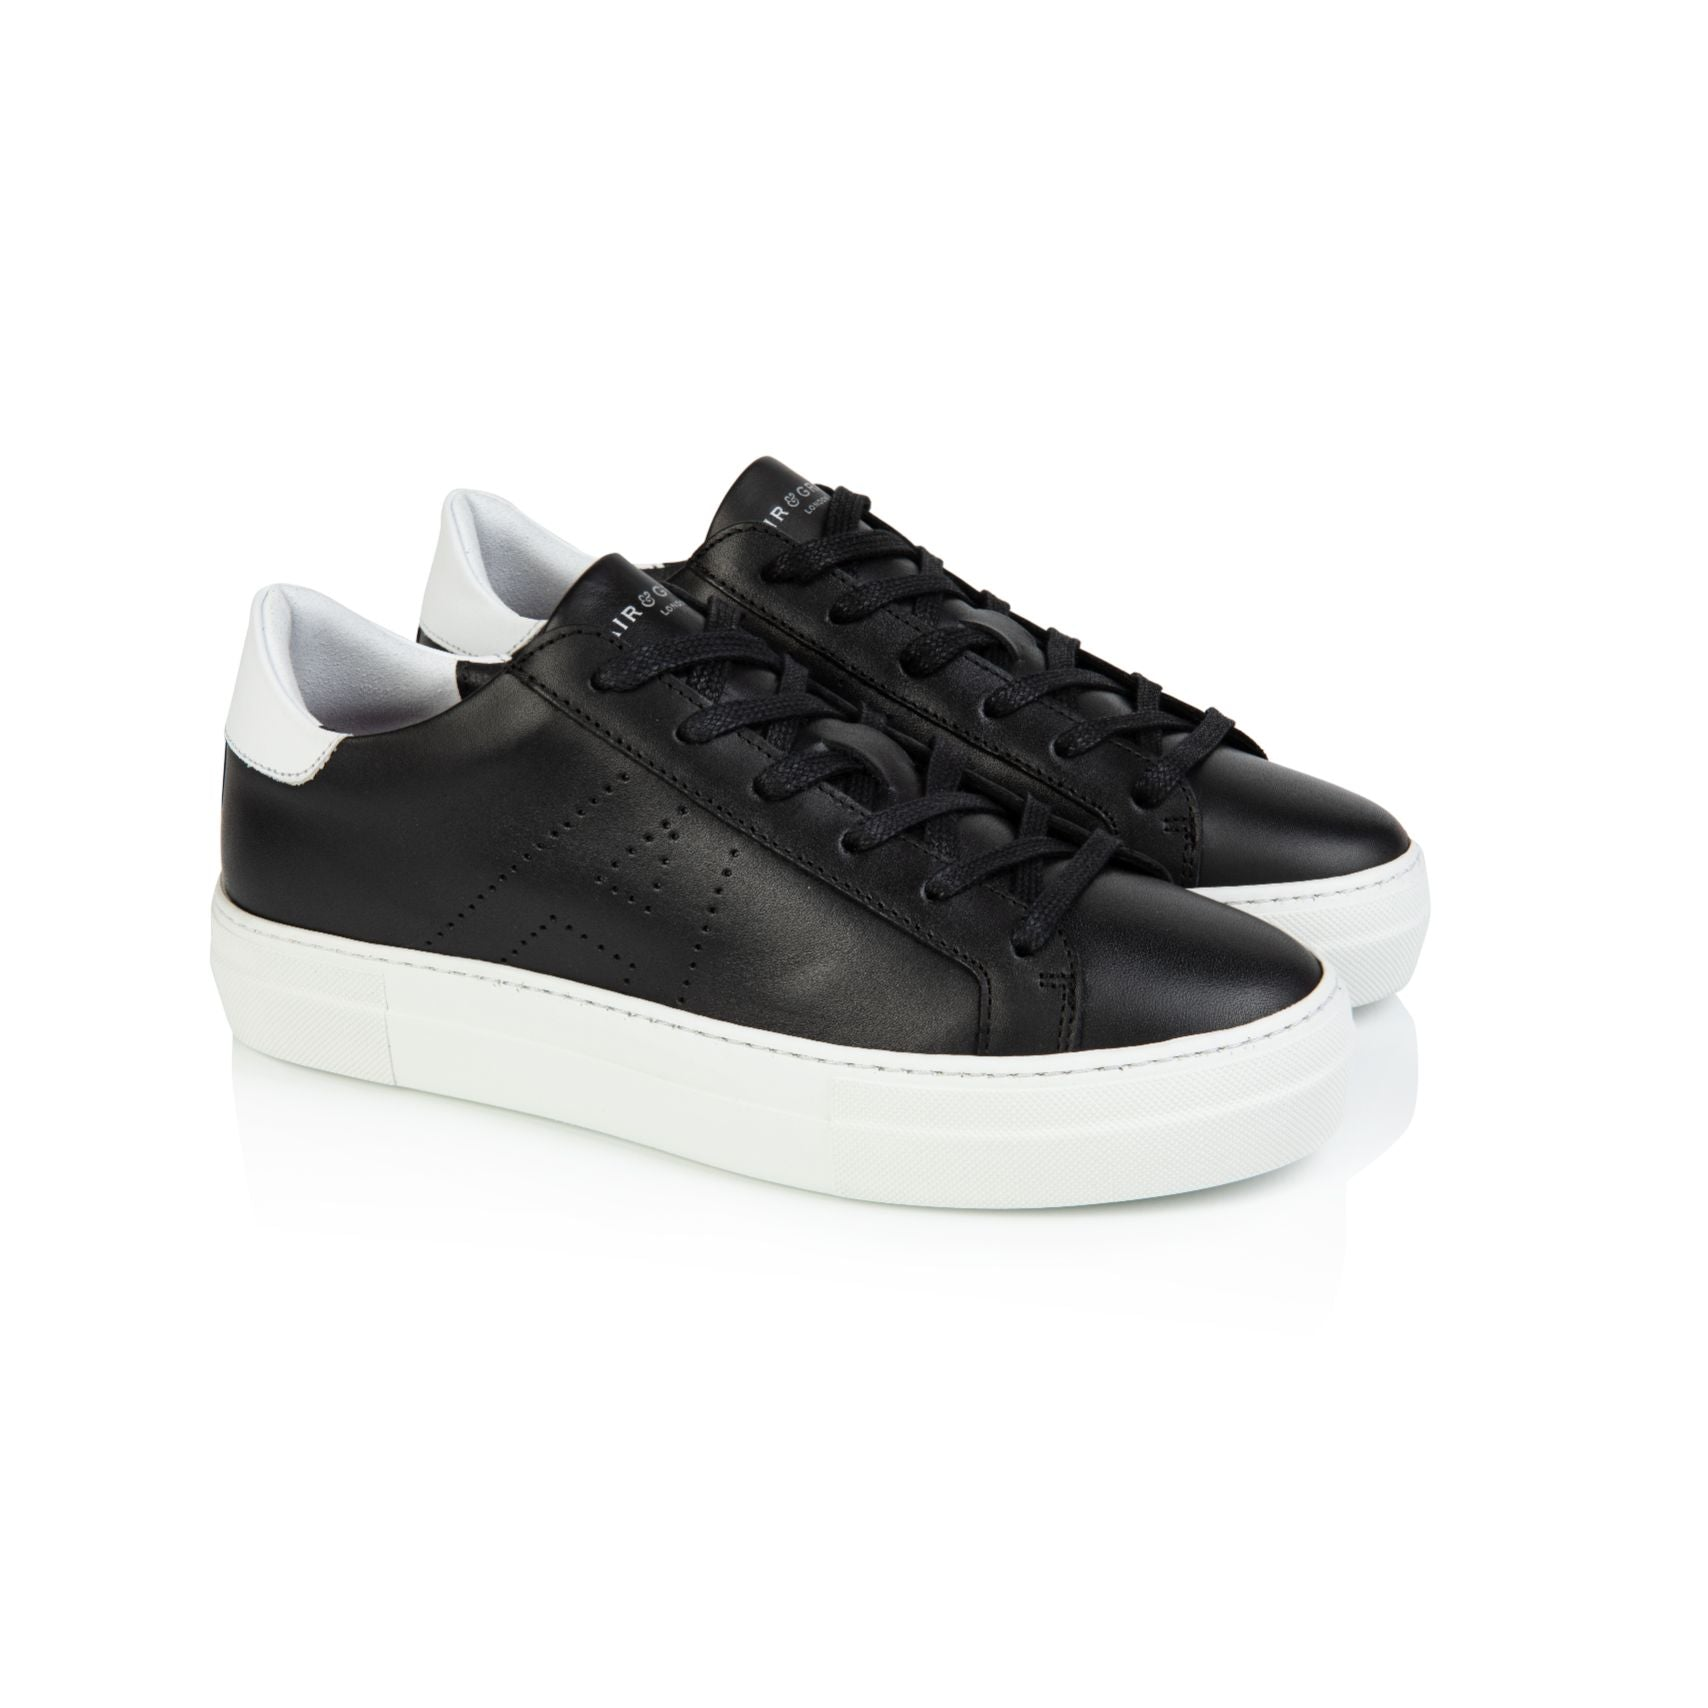 ROXY: BLACK LEATHER TRAINERS